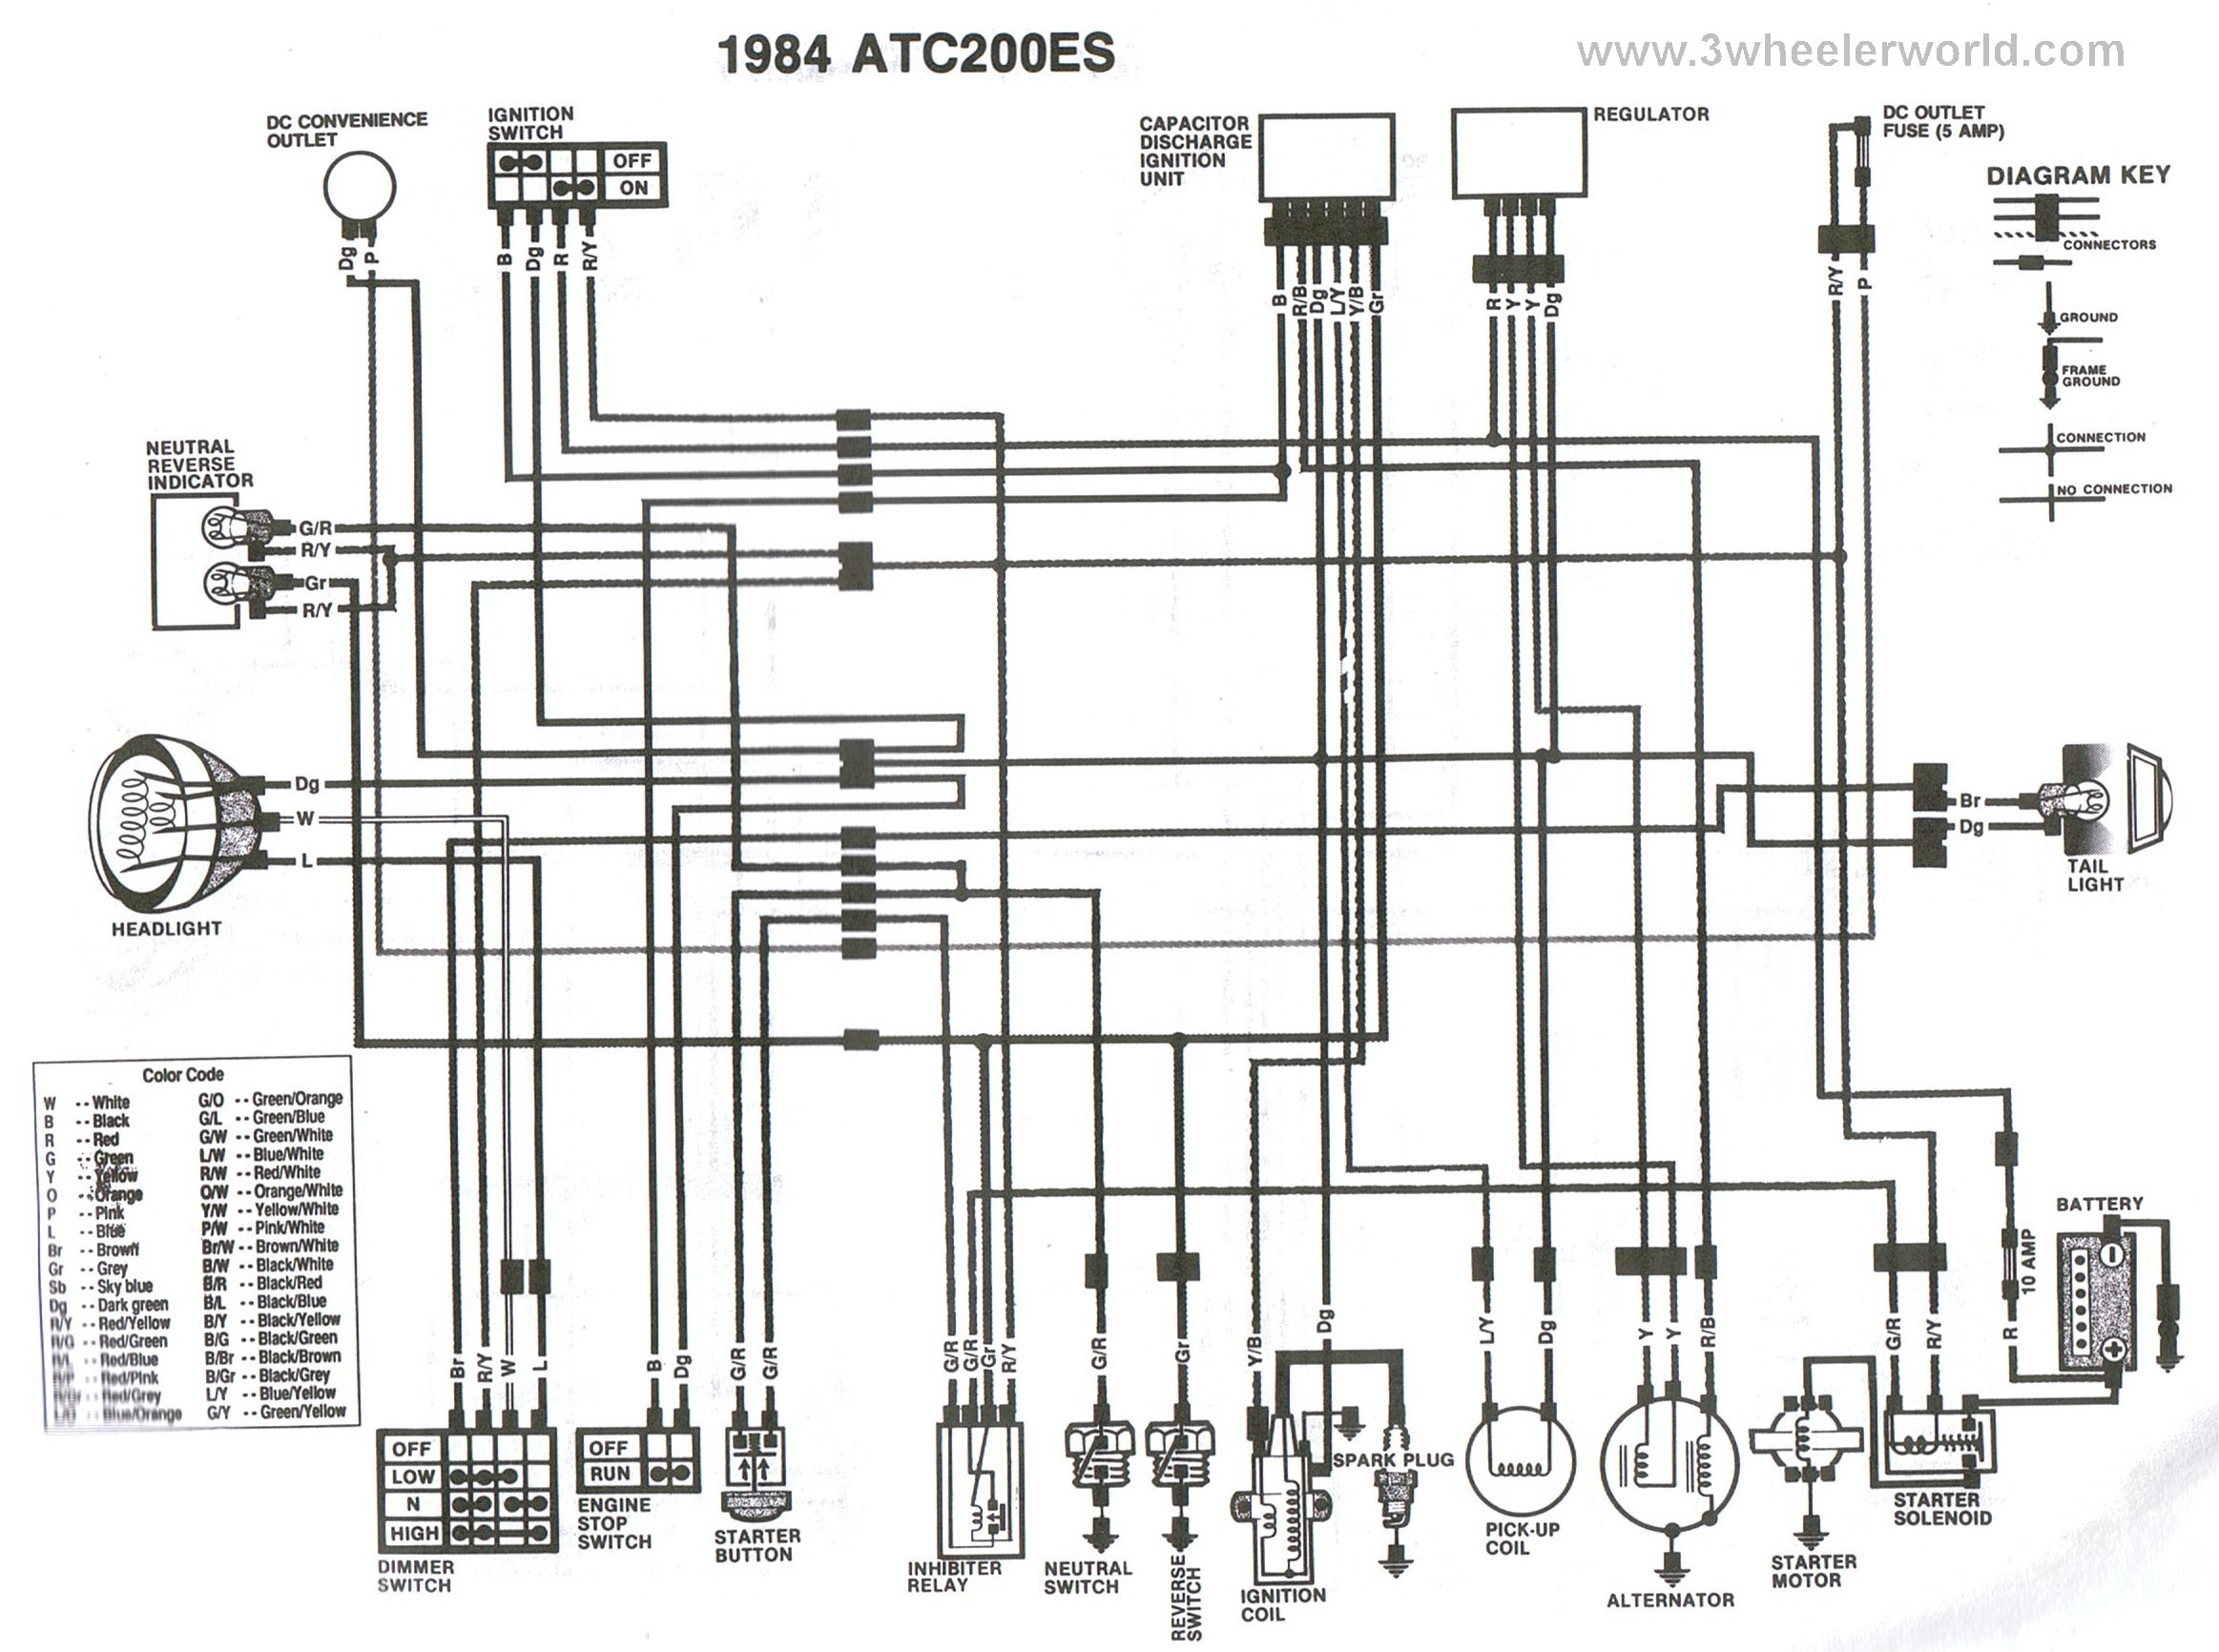 ATC200ESx84 honda wiring diagram kinetic wiring diagrams instruction  at bakdesigns.co